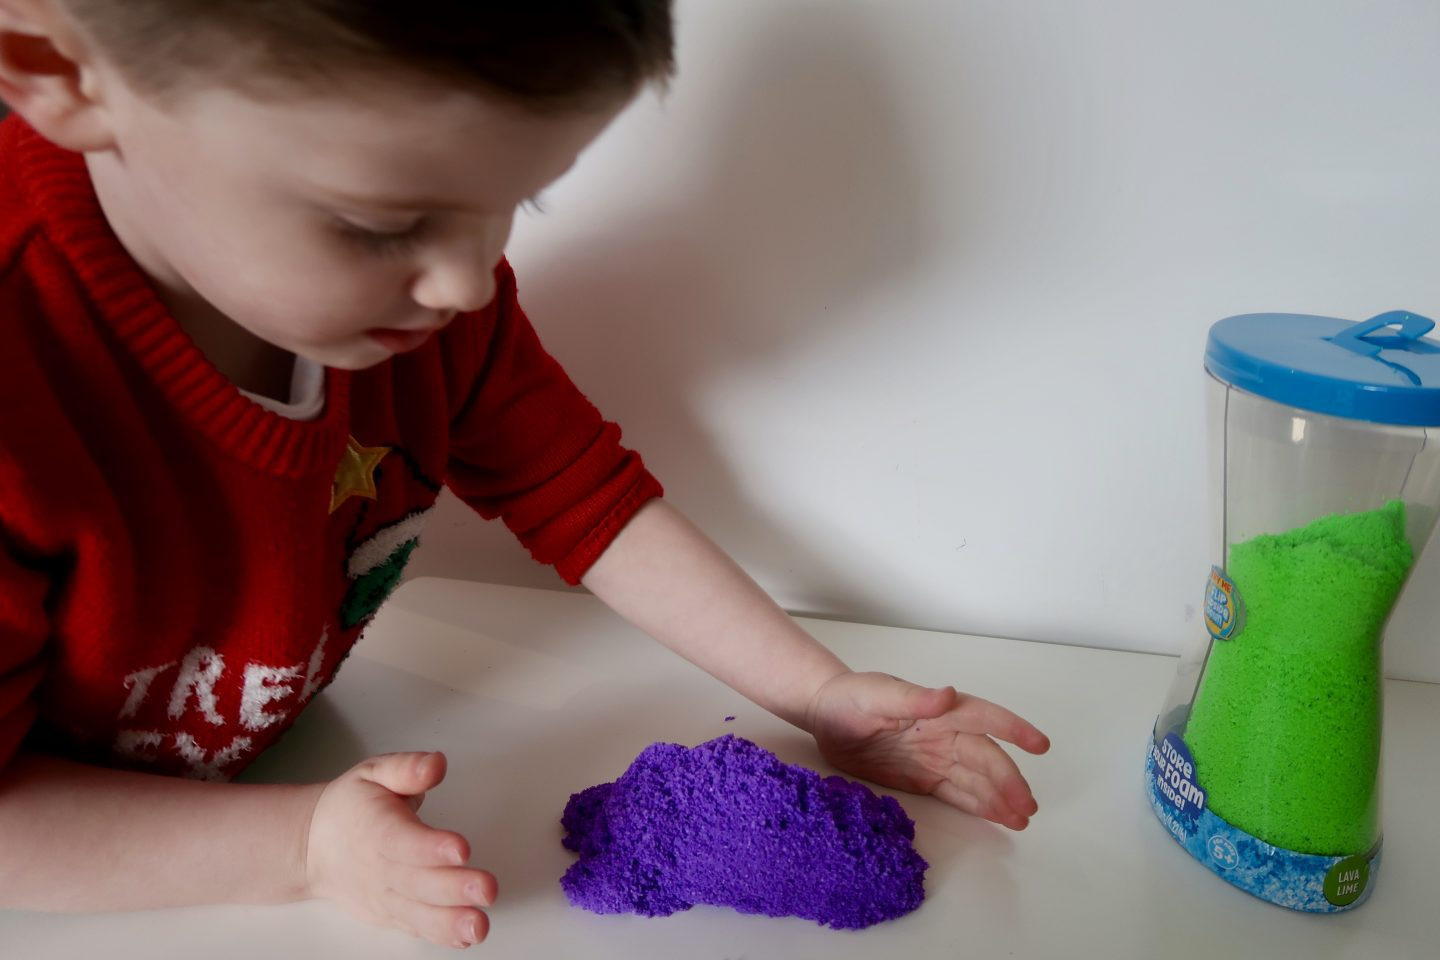 A boy in a red jumper playing with purple sensory sand on a white table. A tub with green sensory sand in it is next to him